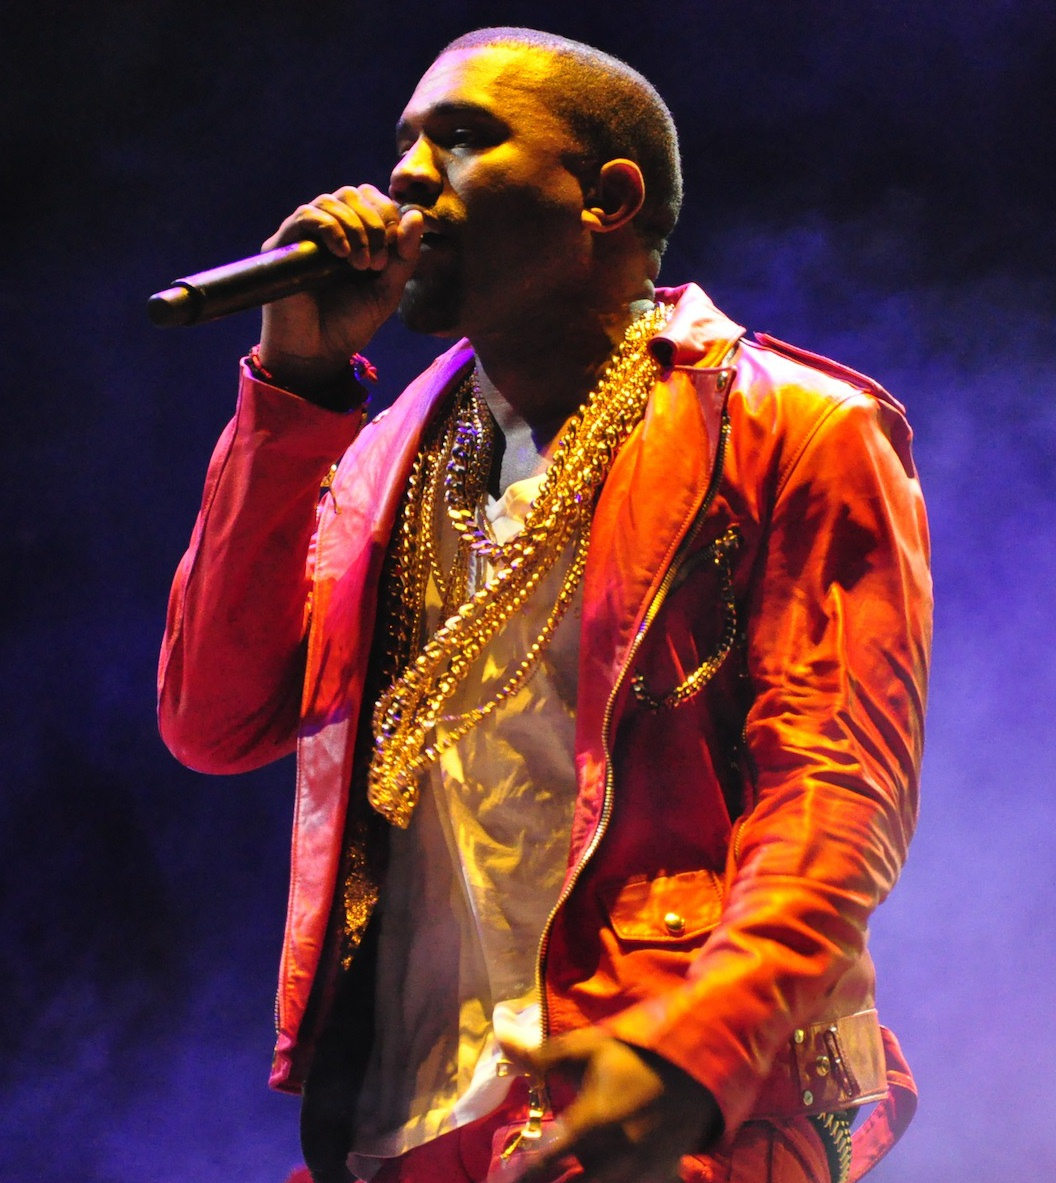 Kanye West; man in orange jacket with microphone